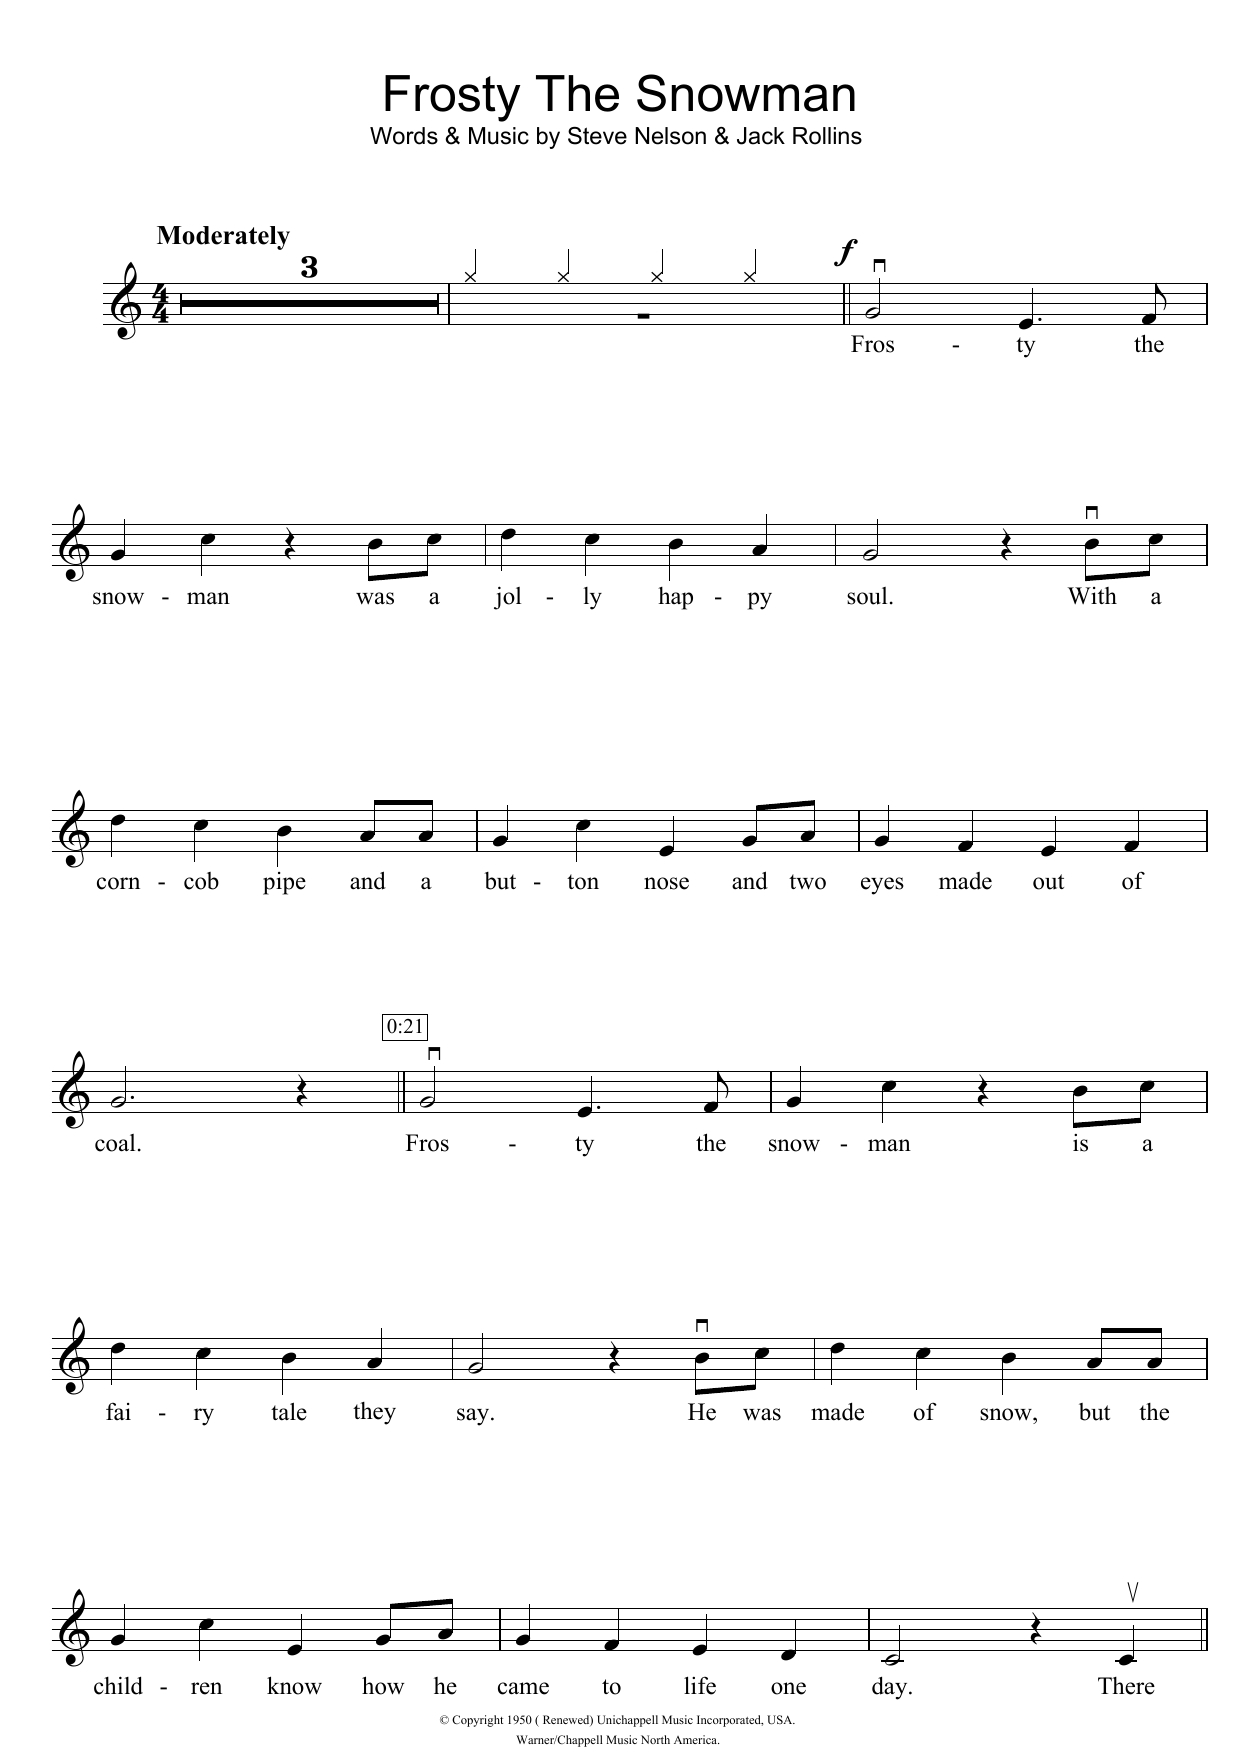 Frosty The Snowman Sheet Music | The Ronettes | Violin Solo - Free Printable Frosty The Snowman Sheet Music